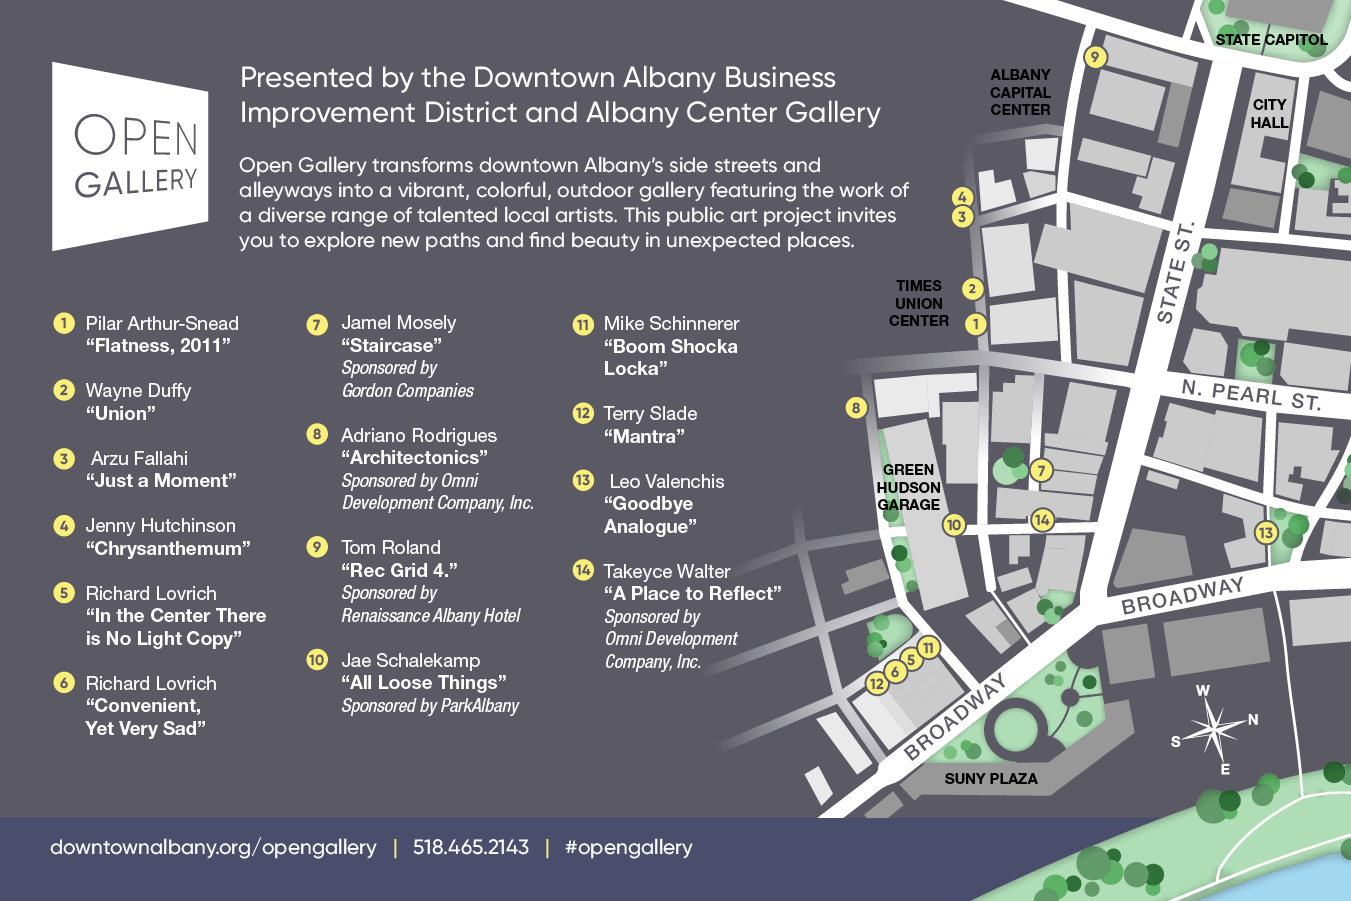 Map of the Open Gallery Locations throughout Downtown Albany